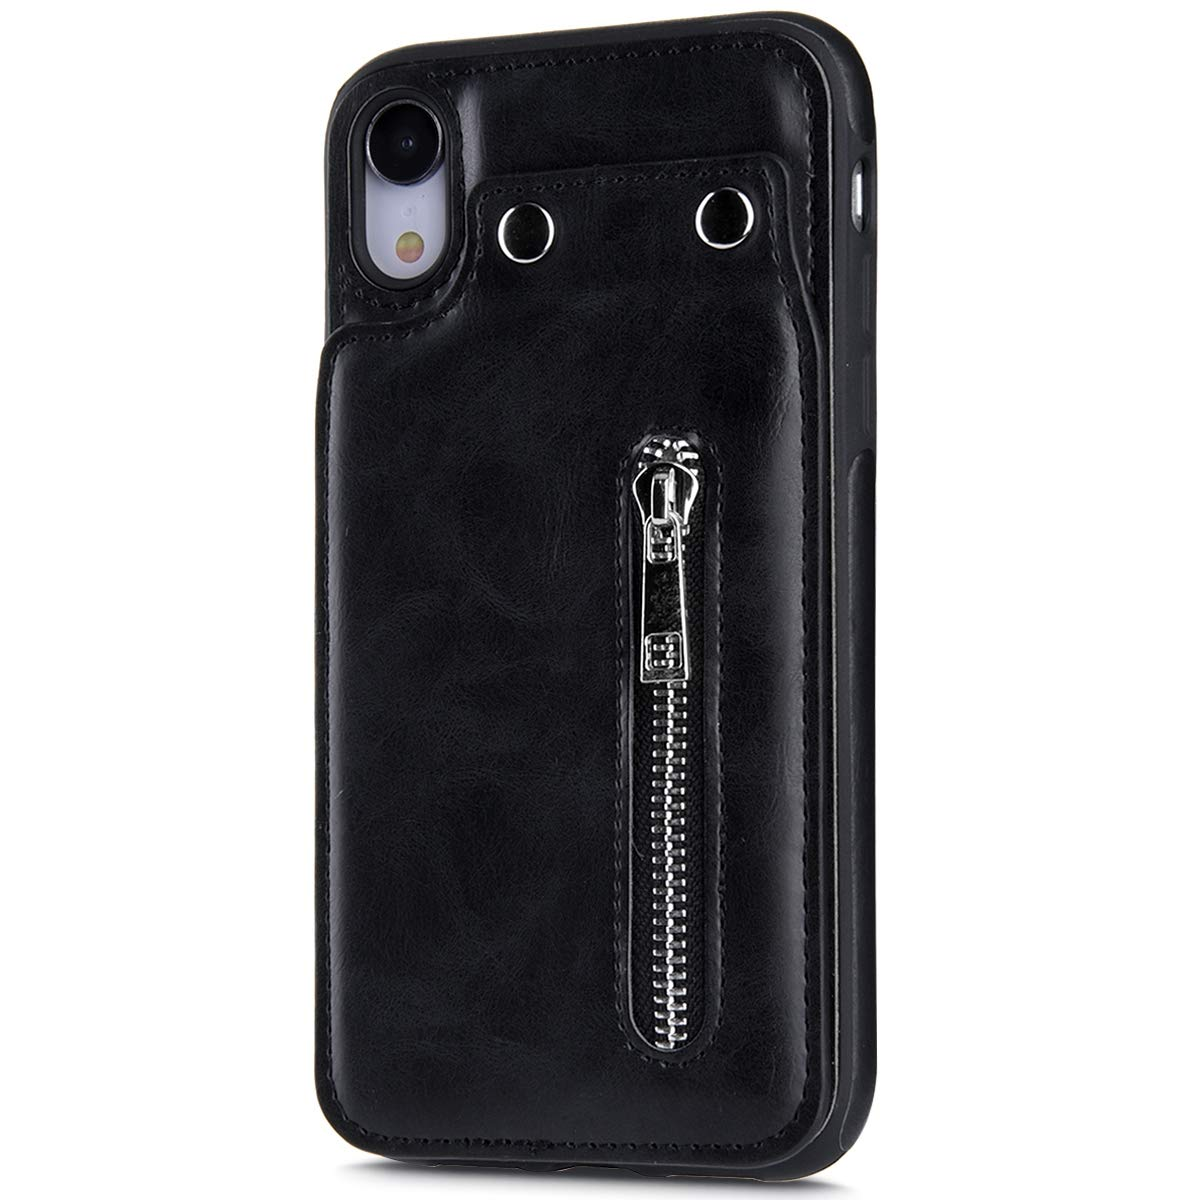 Case for iPhone XR Flip Case Premium PU Leather Wallet Cover with Card Holder Money Pocket Durable Shockproof Protective Cover for iPhone XR,Black by ikasus